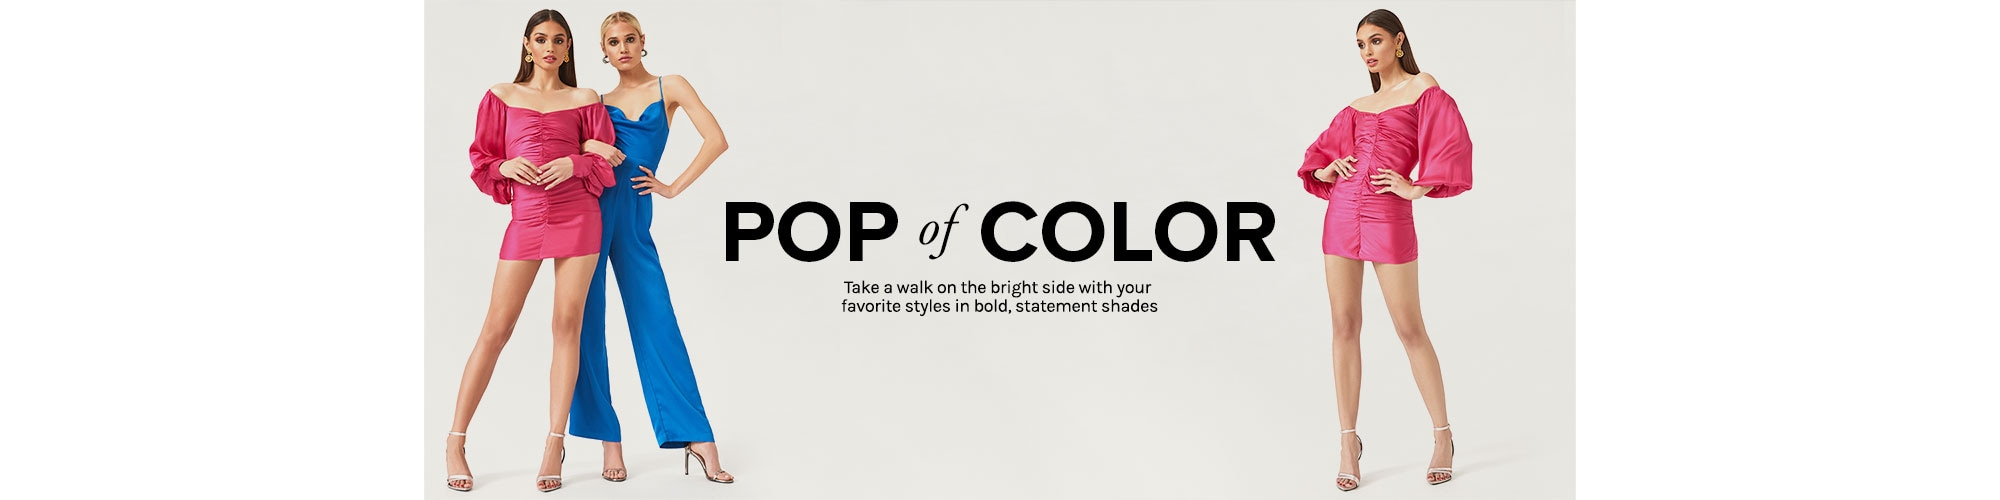 Pop of Color. Take a walk on the bright side with your favorite styles in bold, statement shades. SHOP THE EDIT.